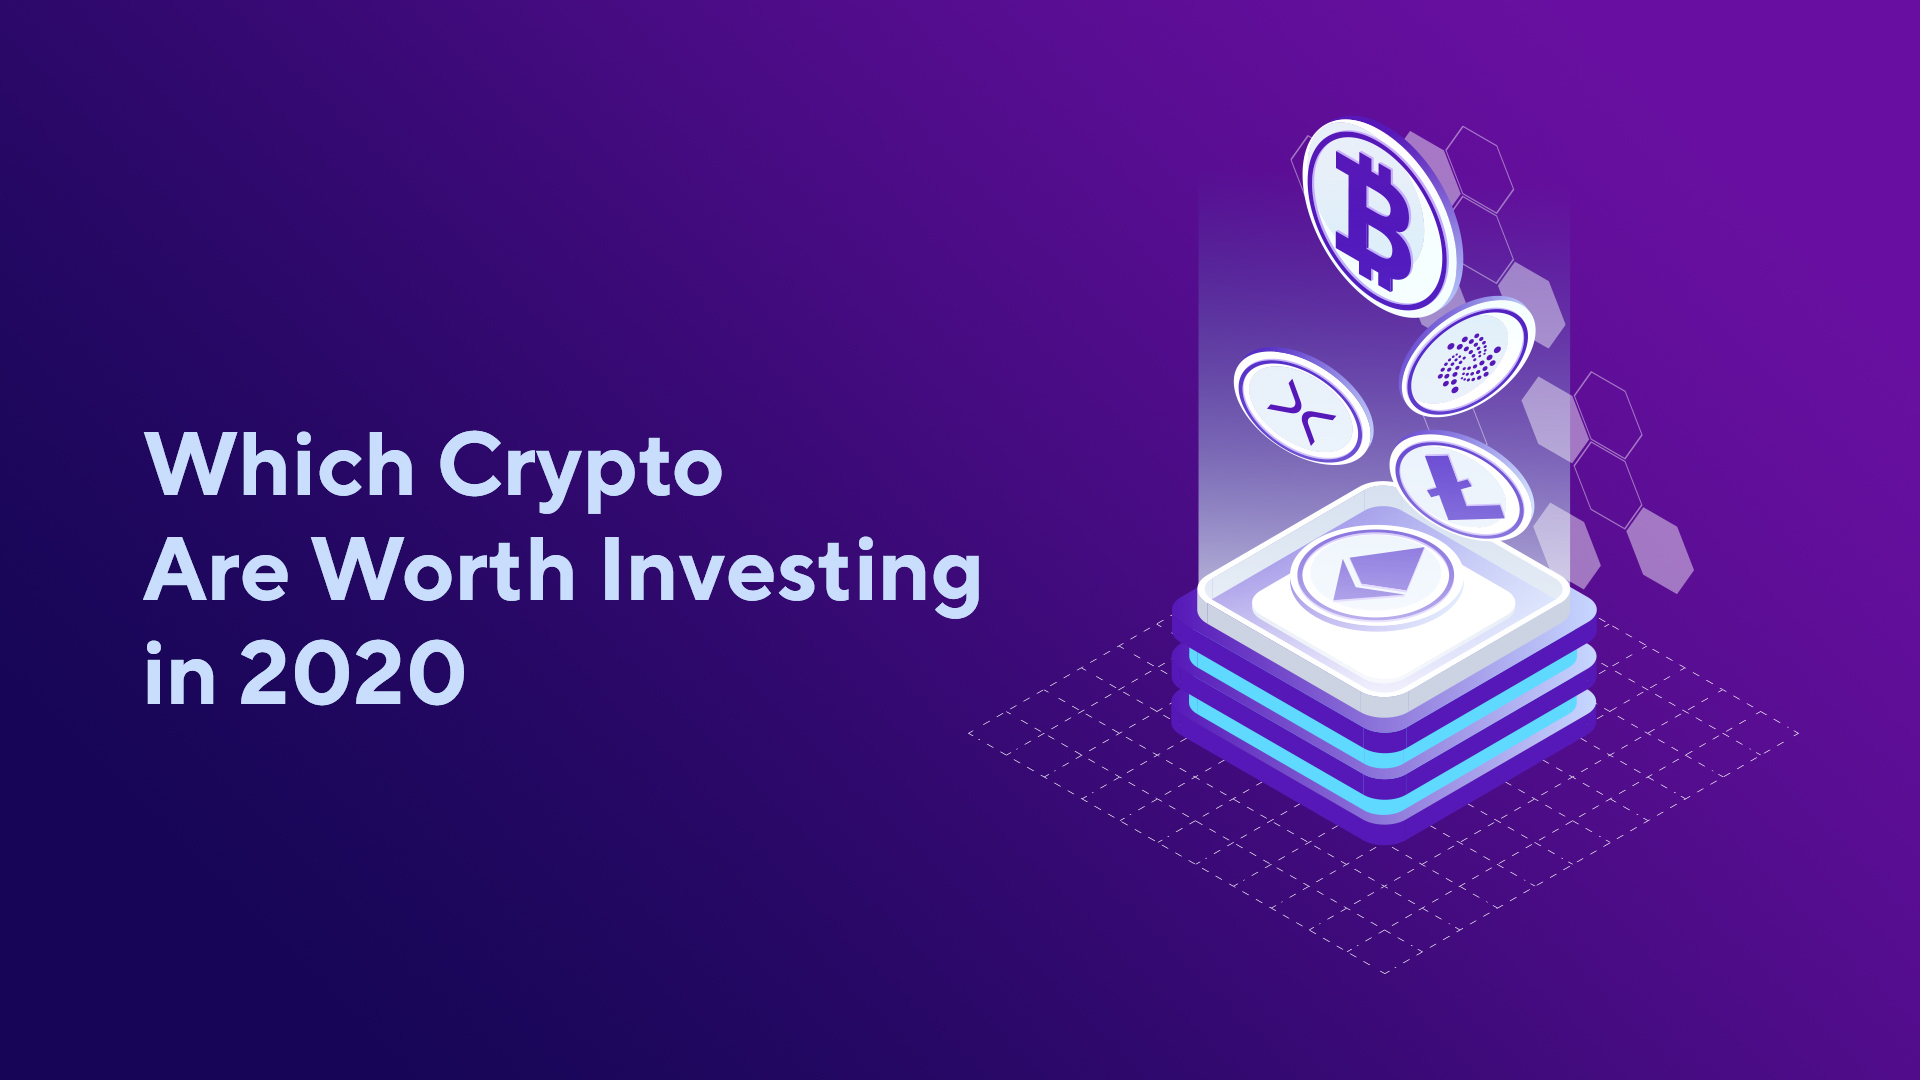 Which Cryptocurrencies Are Worth Investing in 2020?